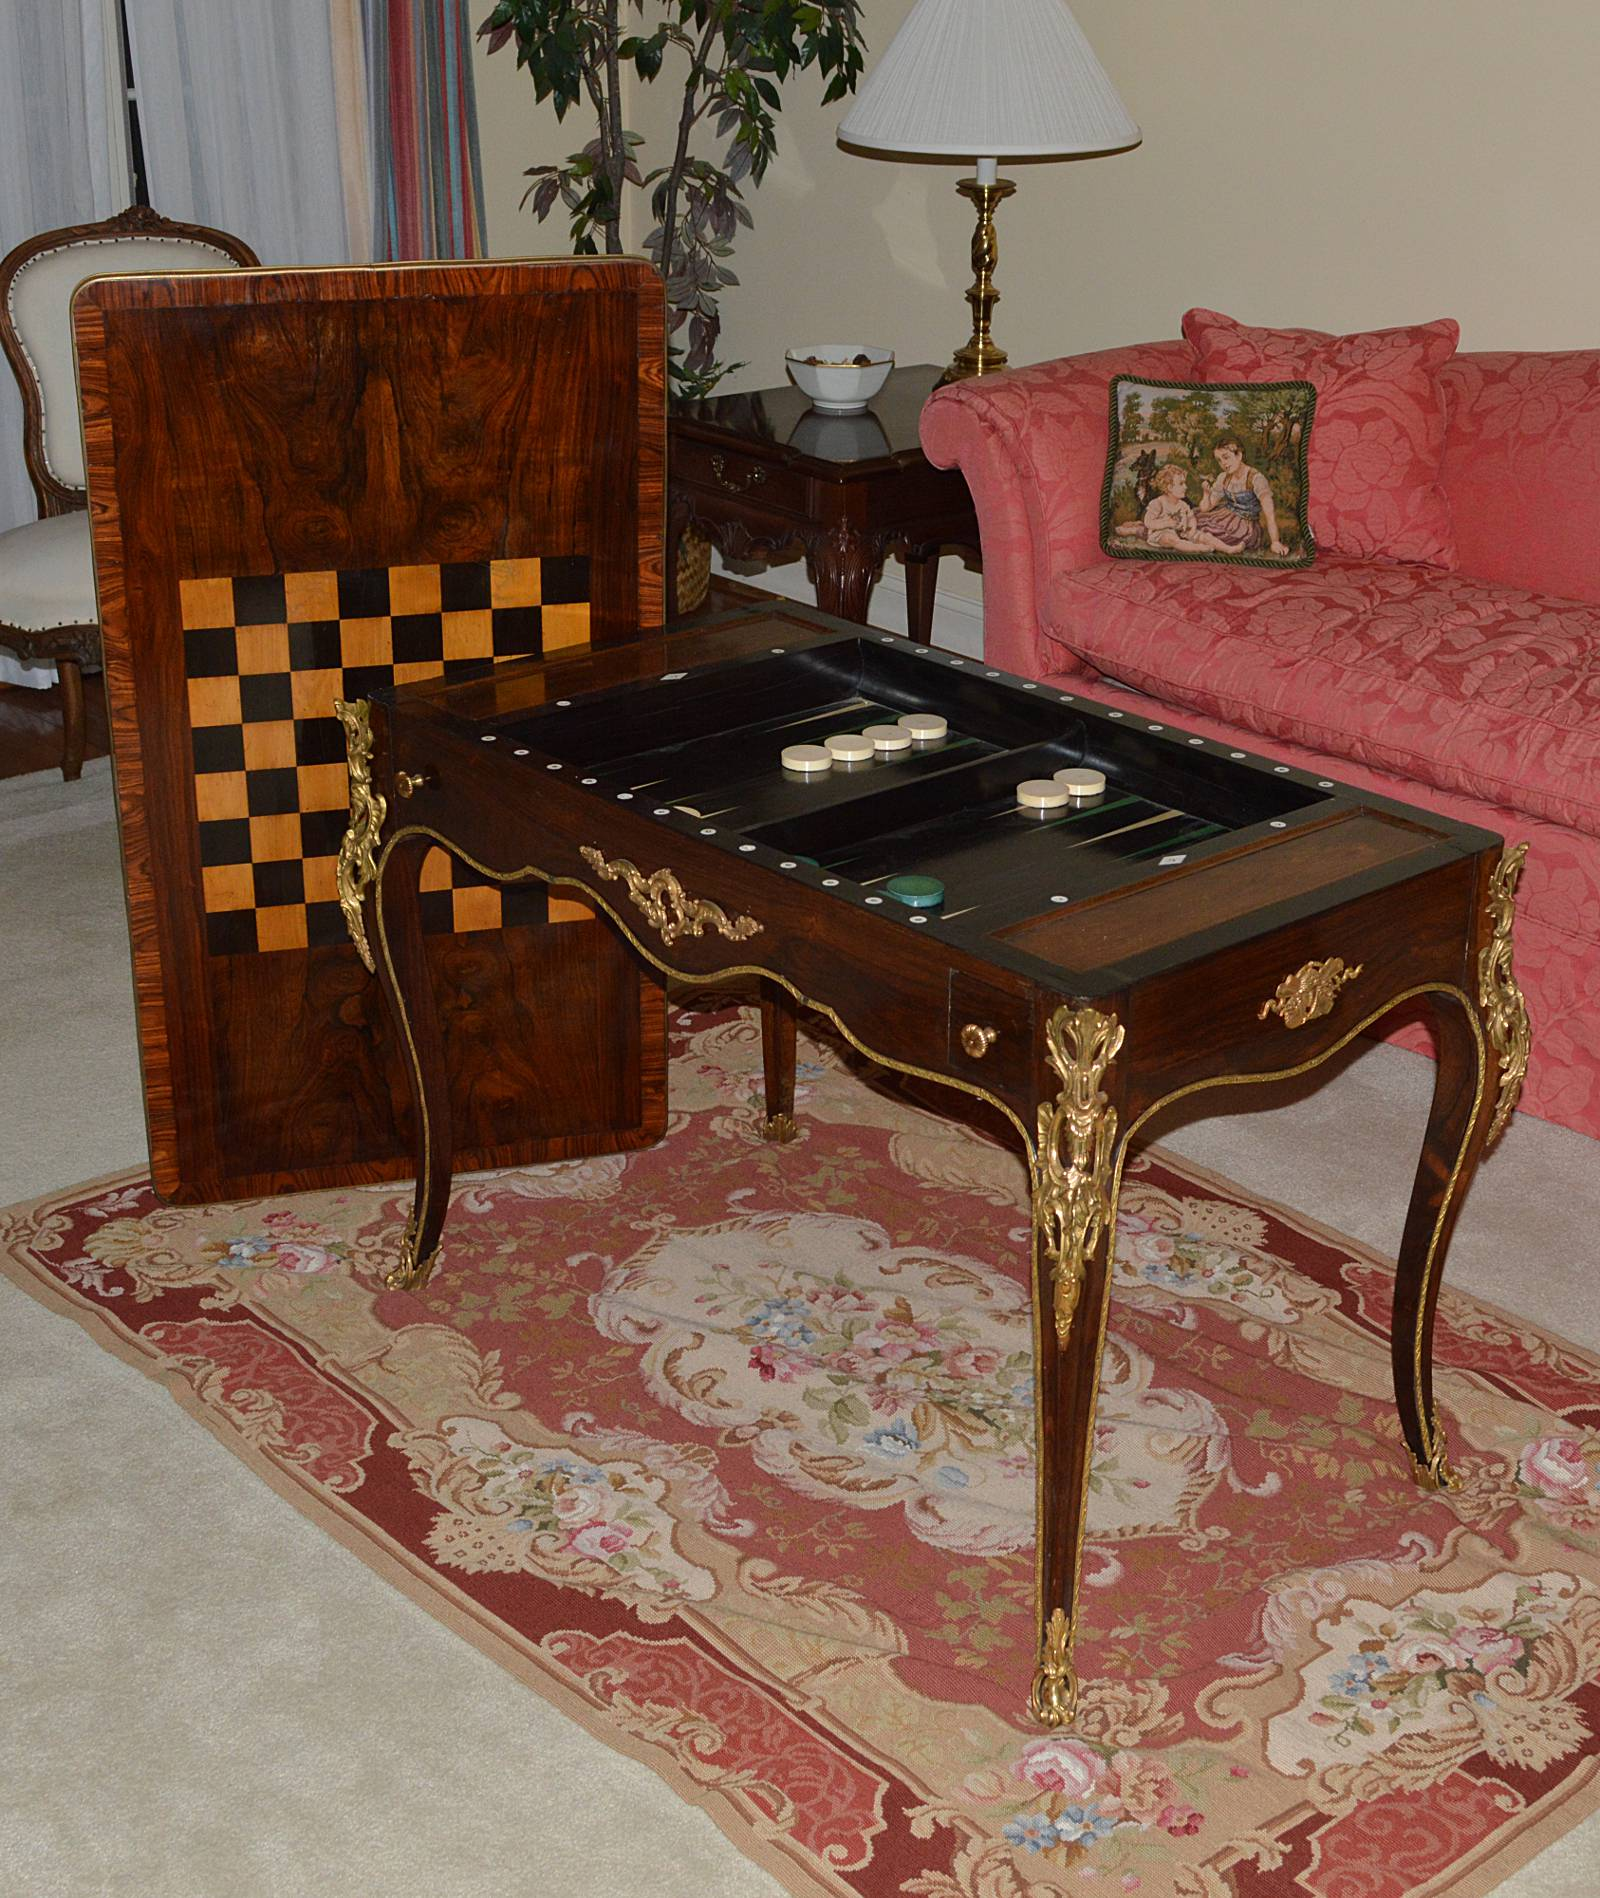 Fine, French, Louis XV style tric-trac table